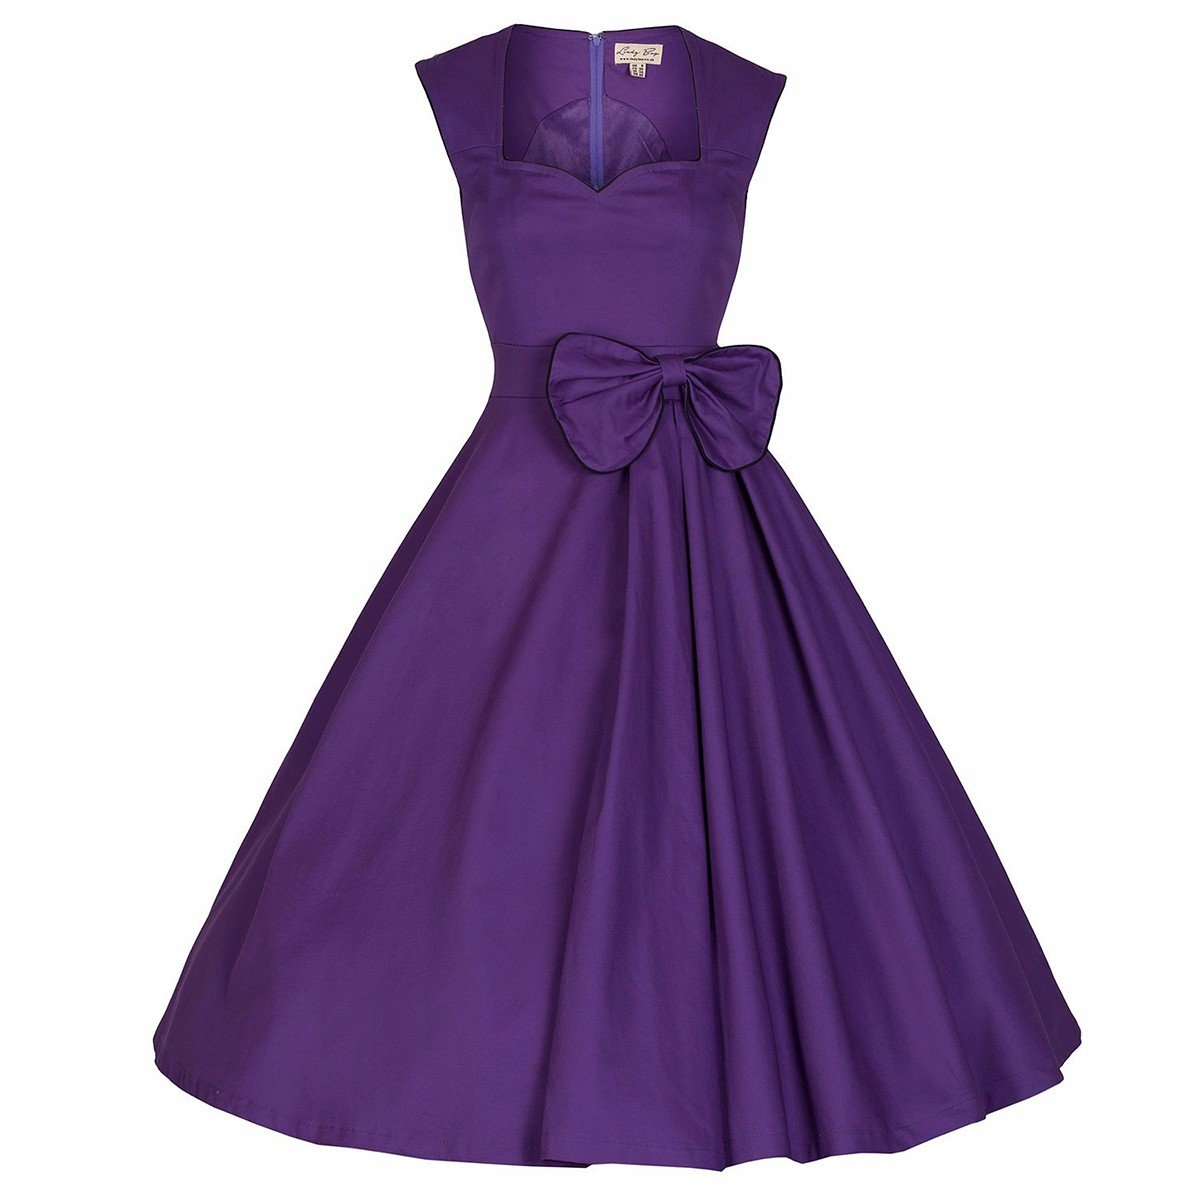 Samtree Women's Vintage 1950s Style Sleeveless Bownot A-Line Cocktail Party Swing Dress(S(2),Purple)